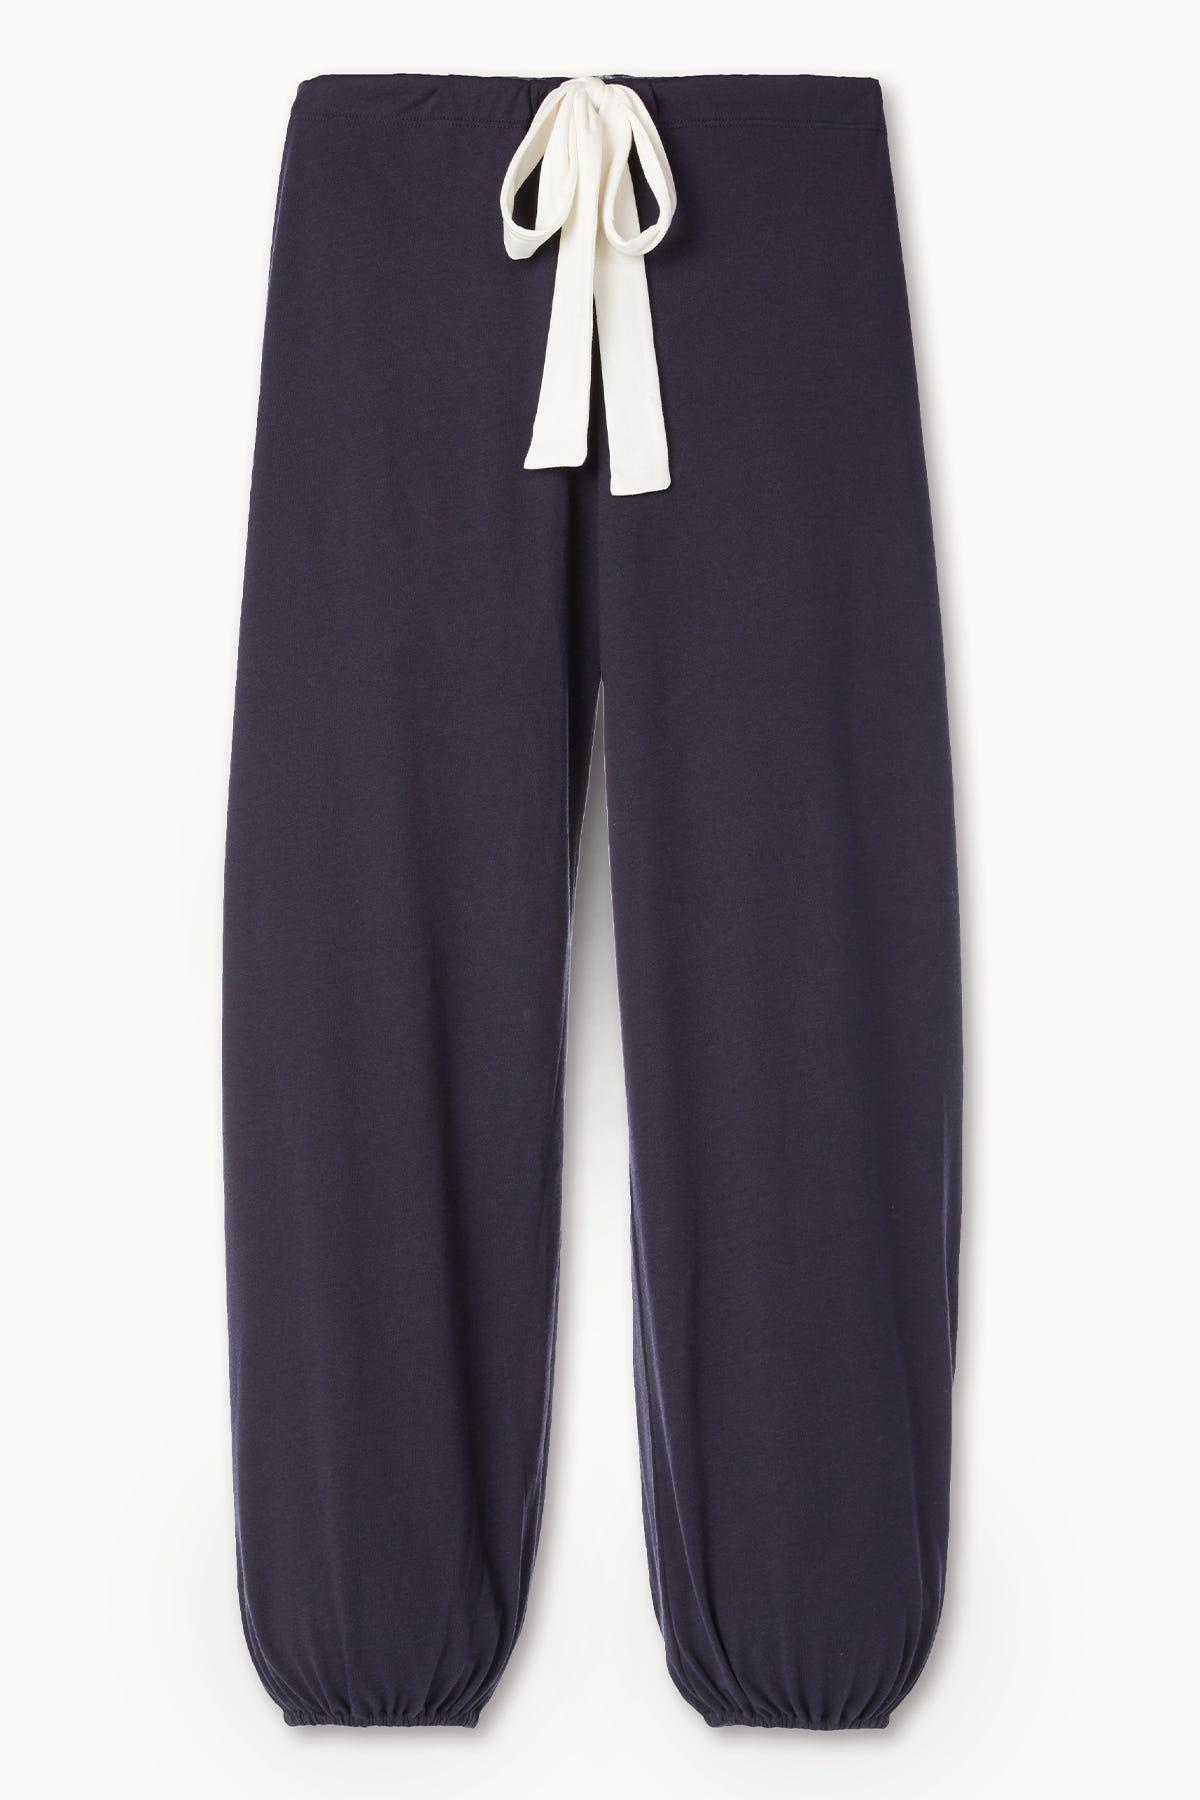 Heather Cotton Blend Cropped Pant 3